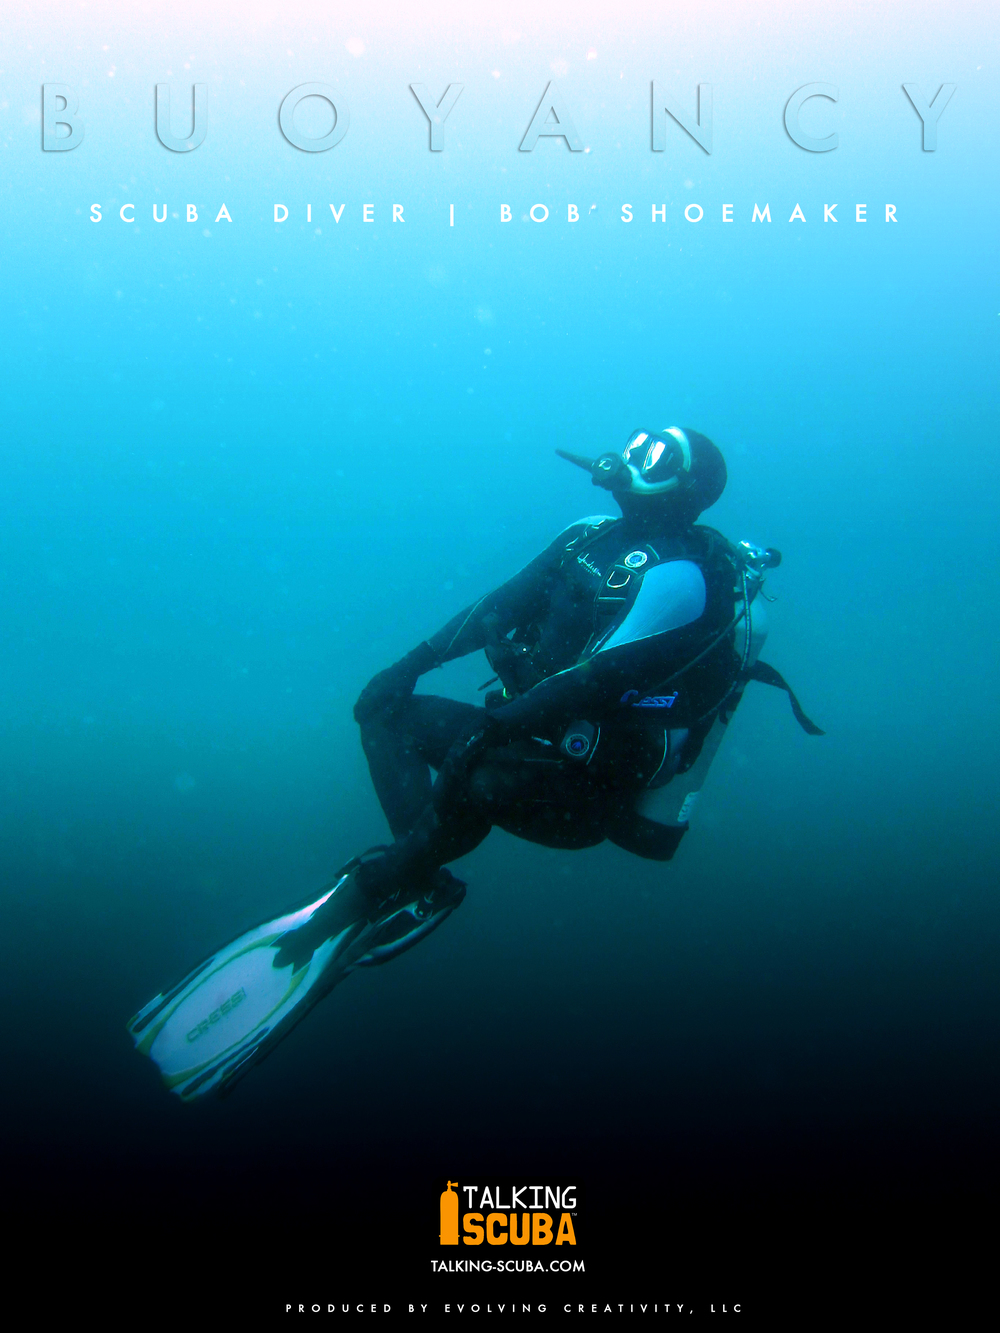 Promotional Poster for Talking Scuba featuring Bob Shoemaker